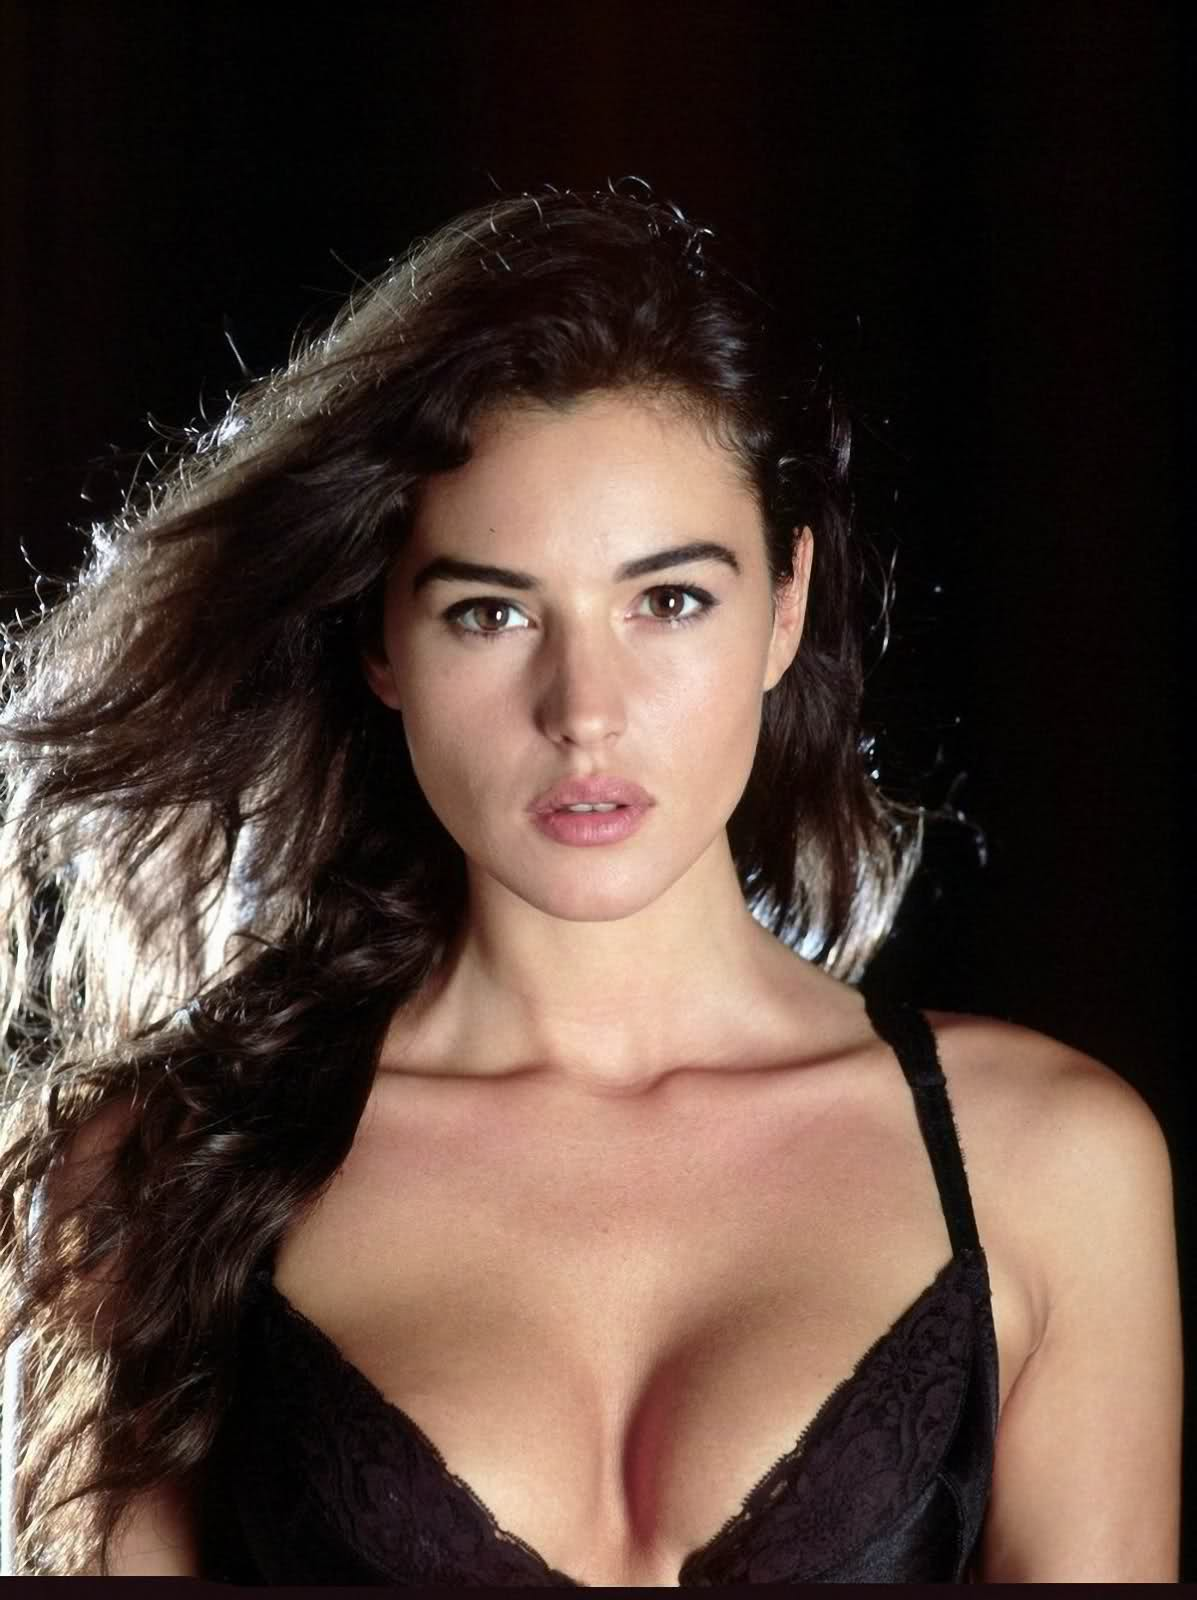 Beautiful Fiction Girl Wallpapers Monica Bellucci Extremely Hot Images Facts N Frames